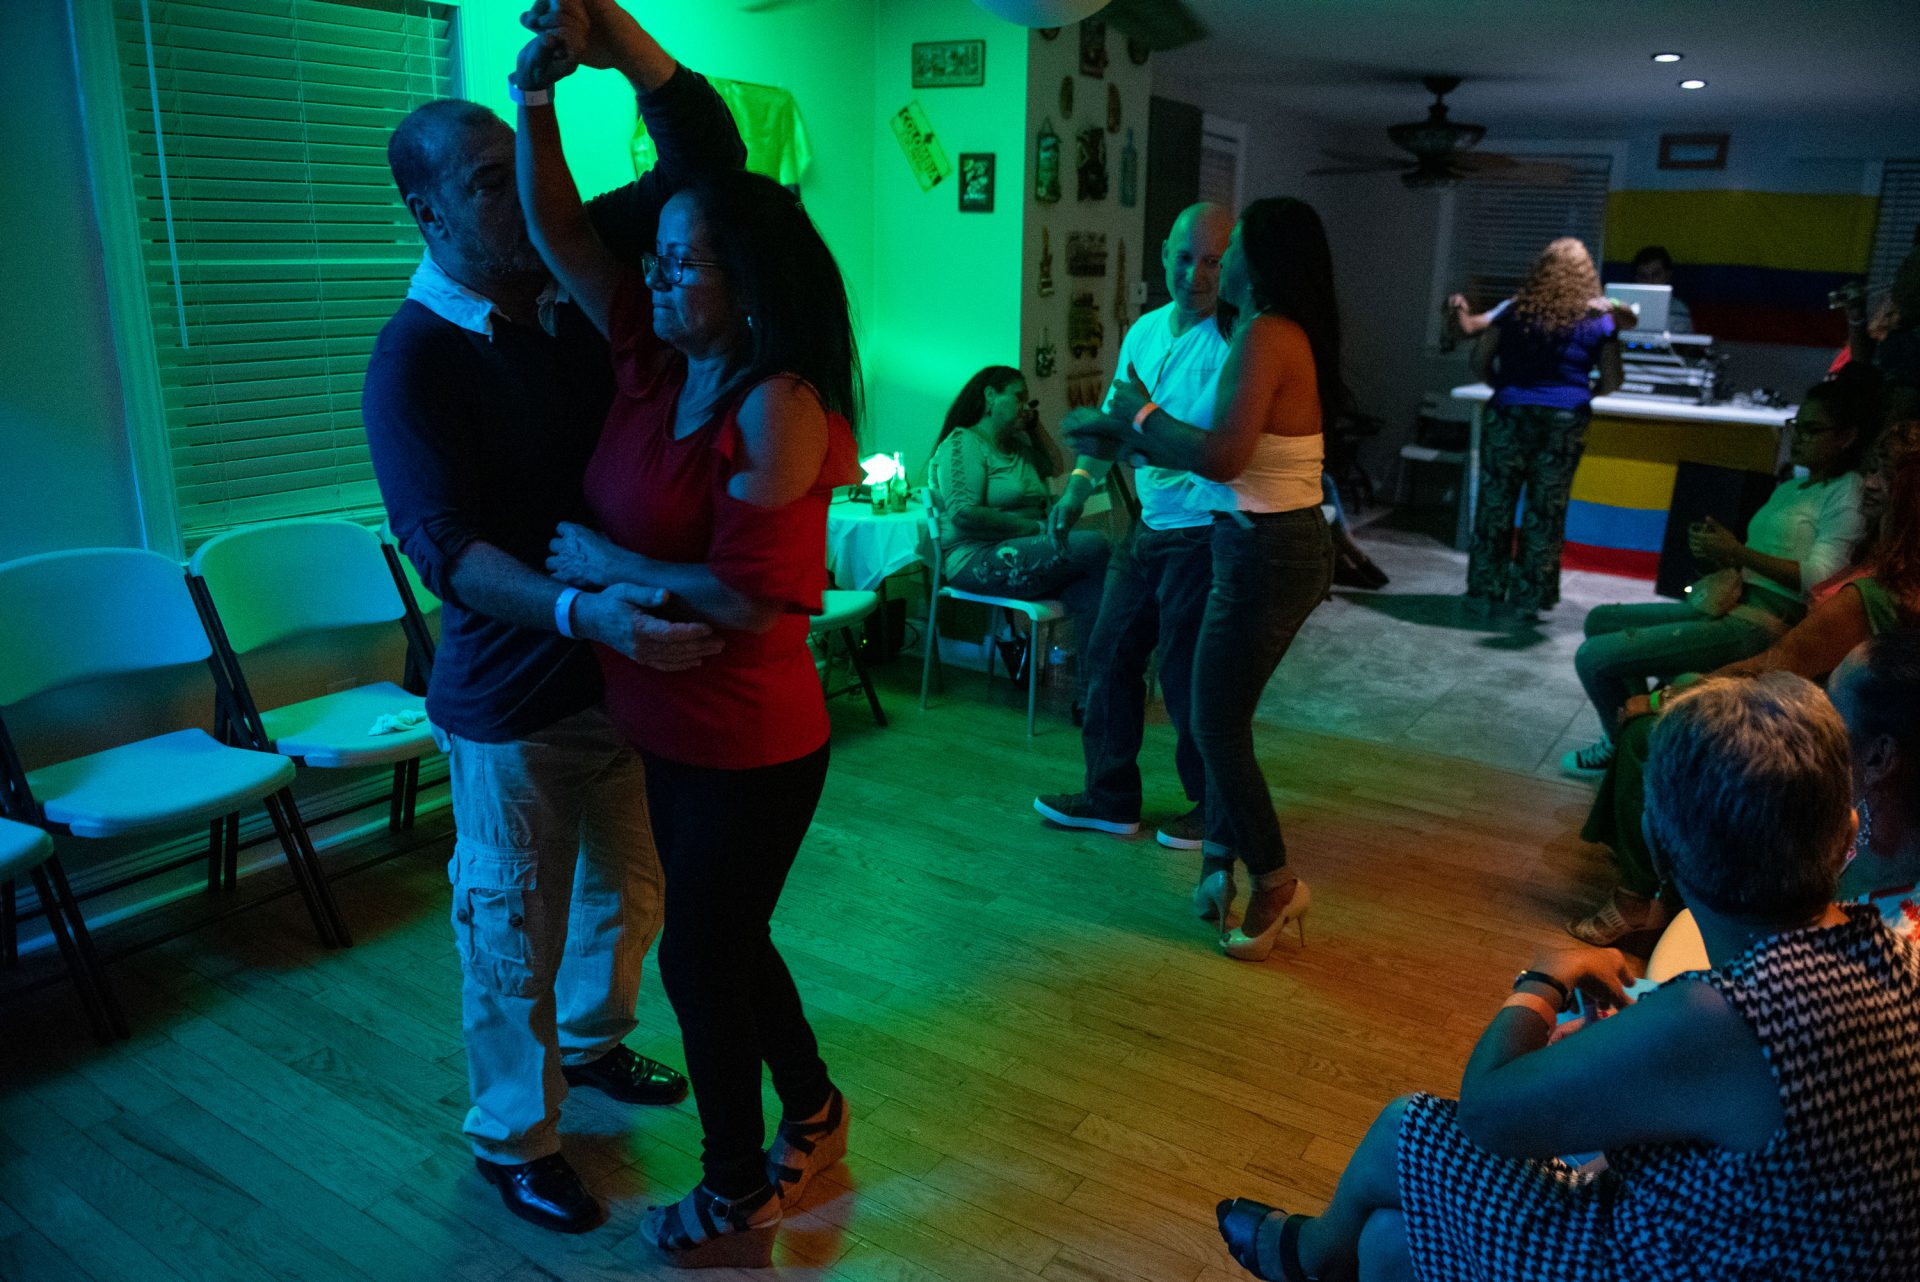 Guests dance in a viejoteca held in an Oxford Circle home on Sunday, September 15, 2019.